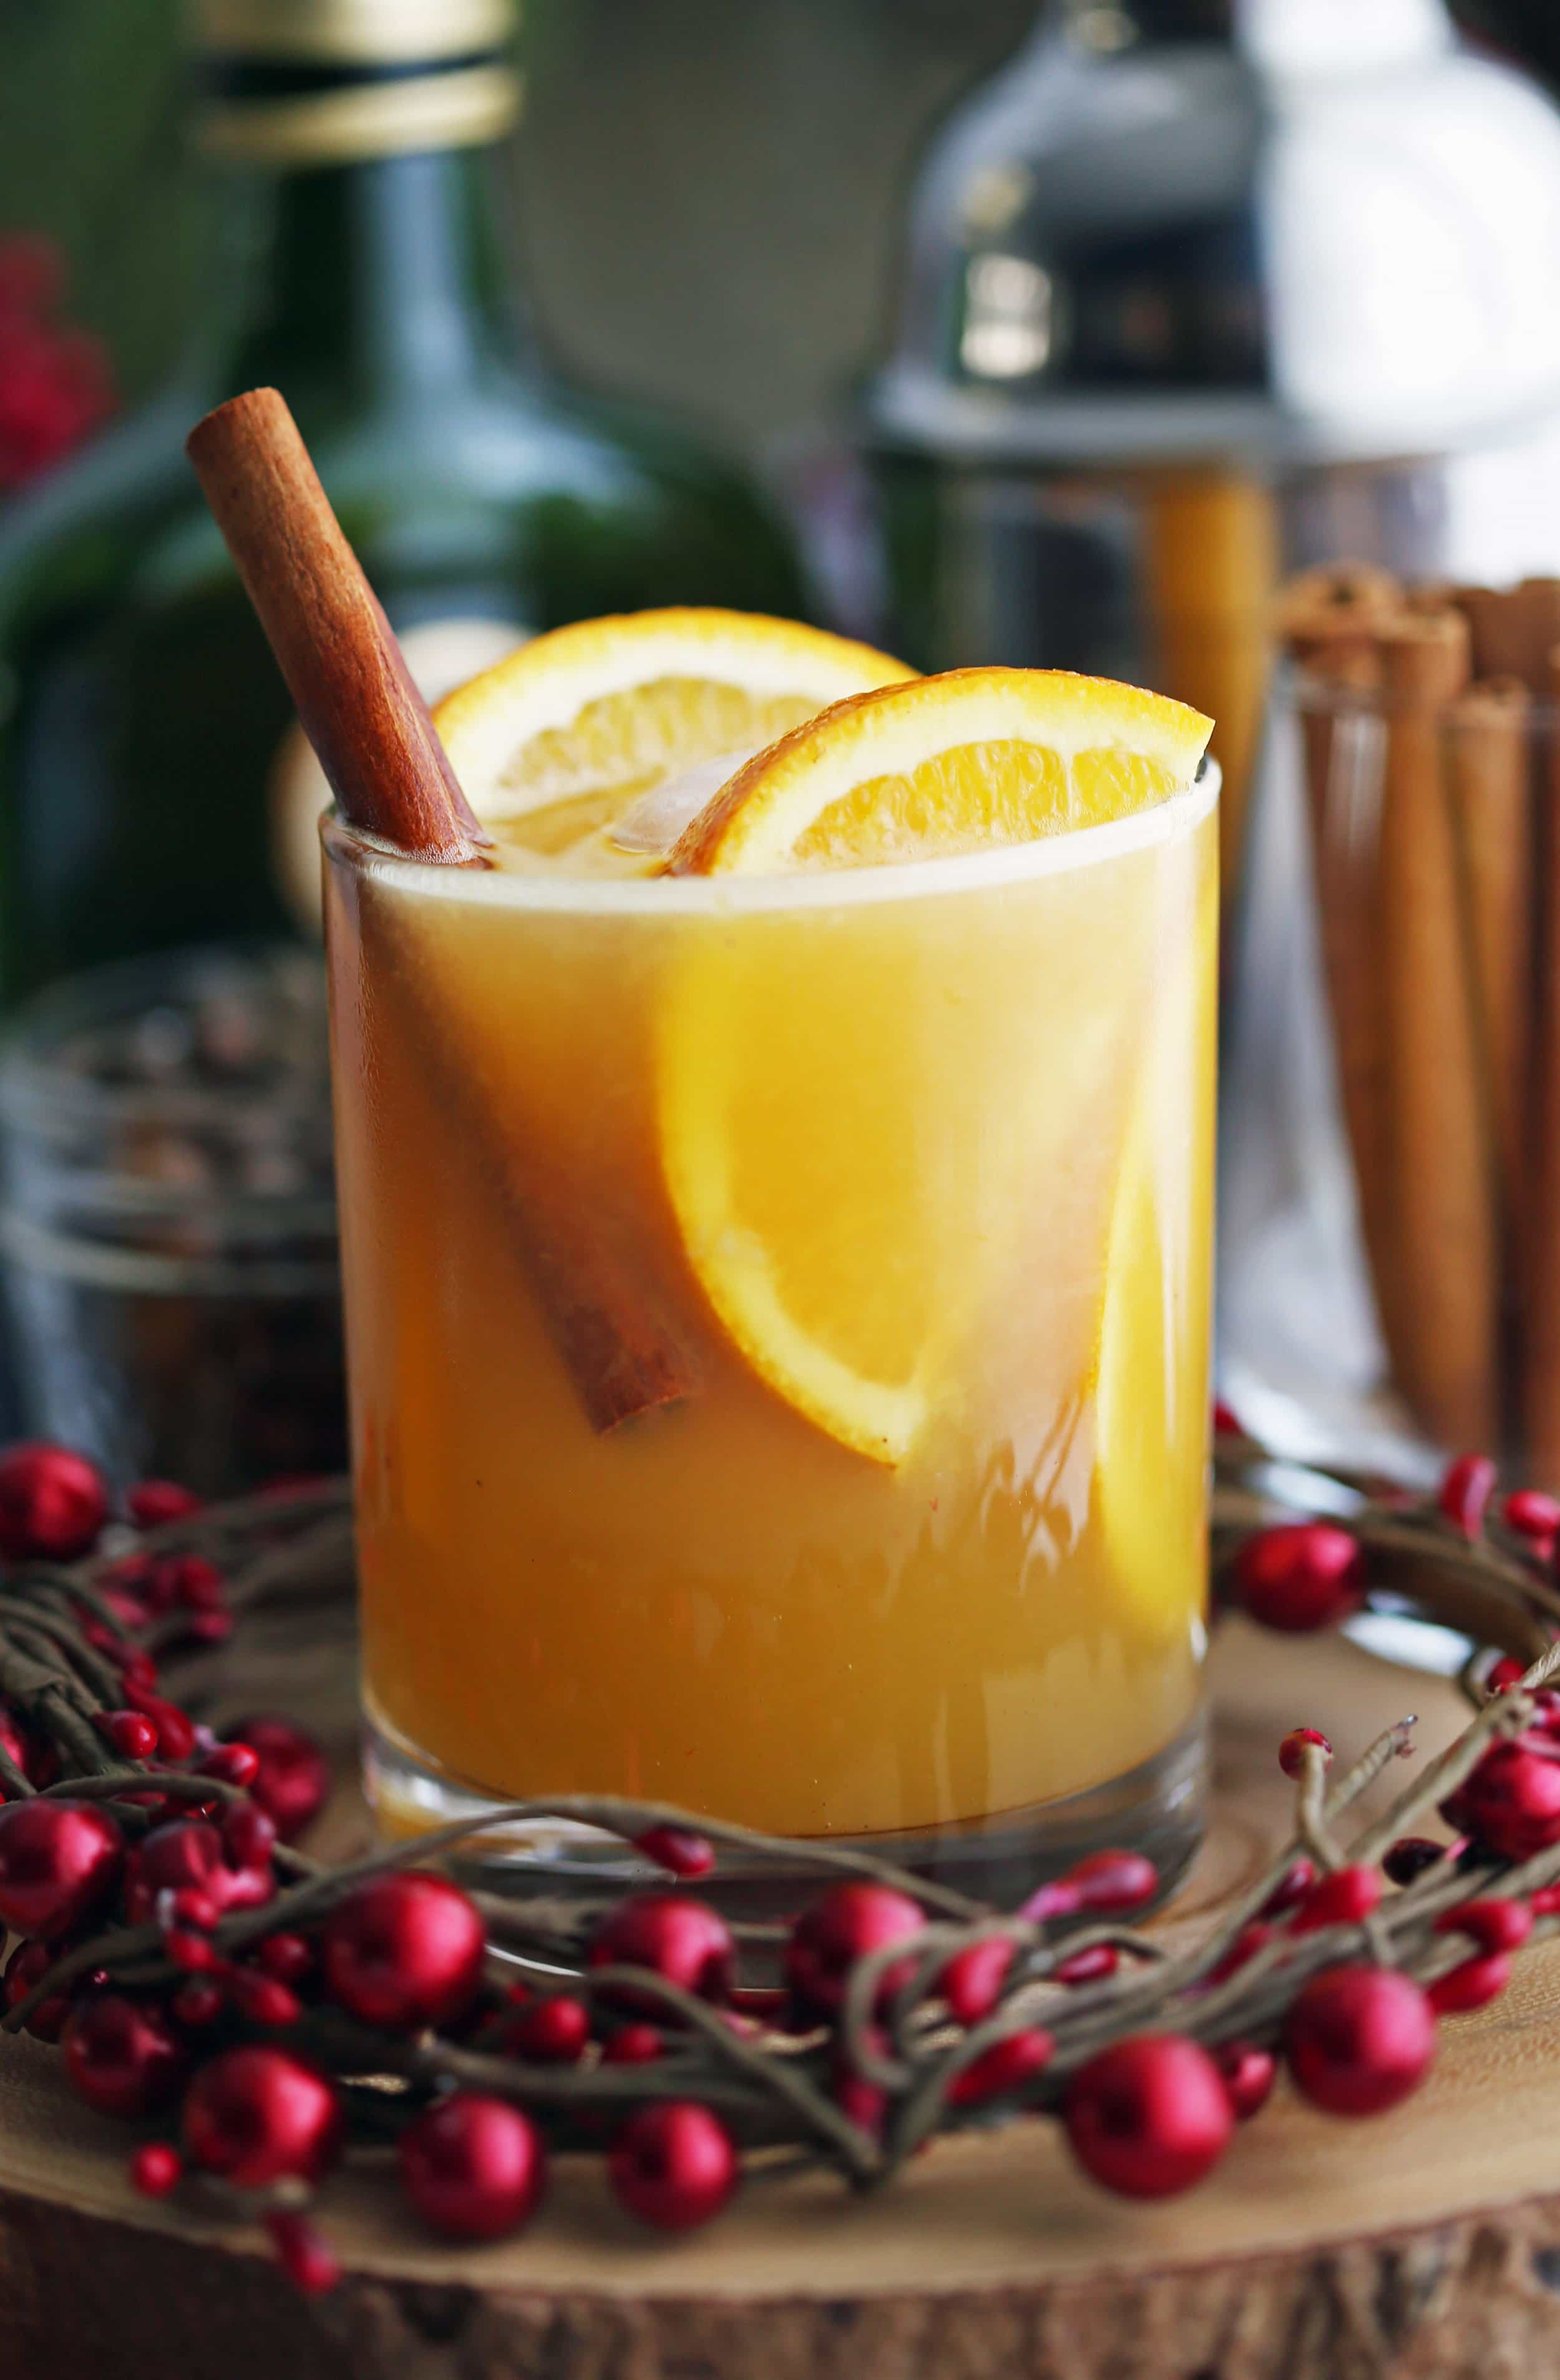 Spiced orange brandy spritzer drink with orange slices and a cinnamon stick in a double old fashioned glass.